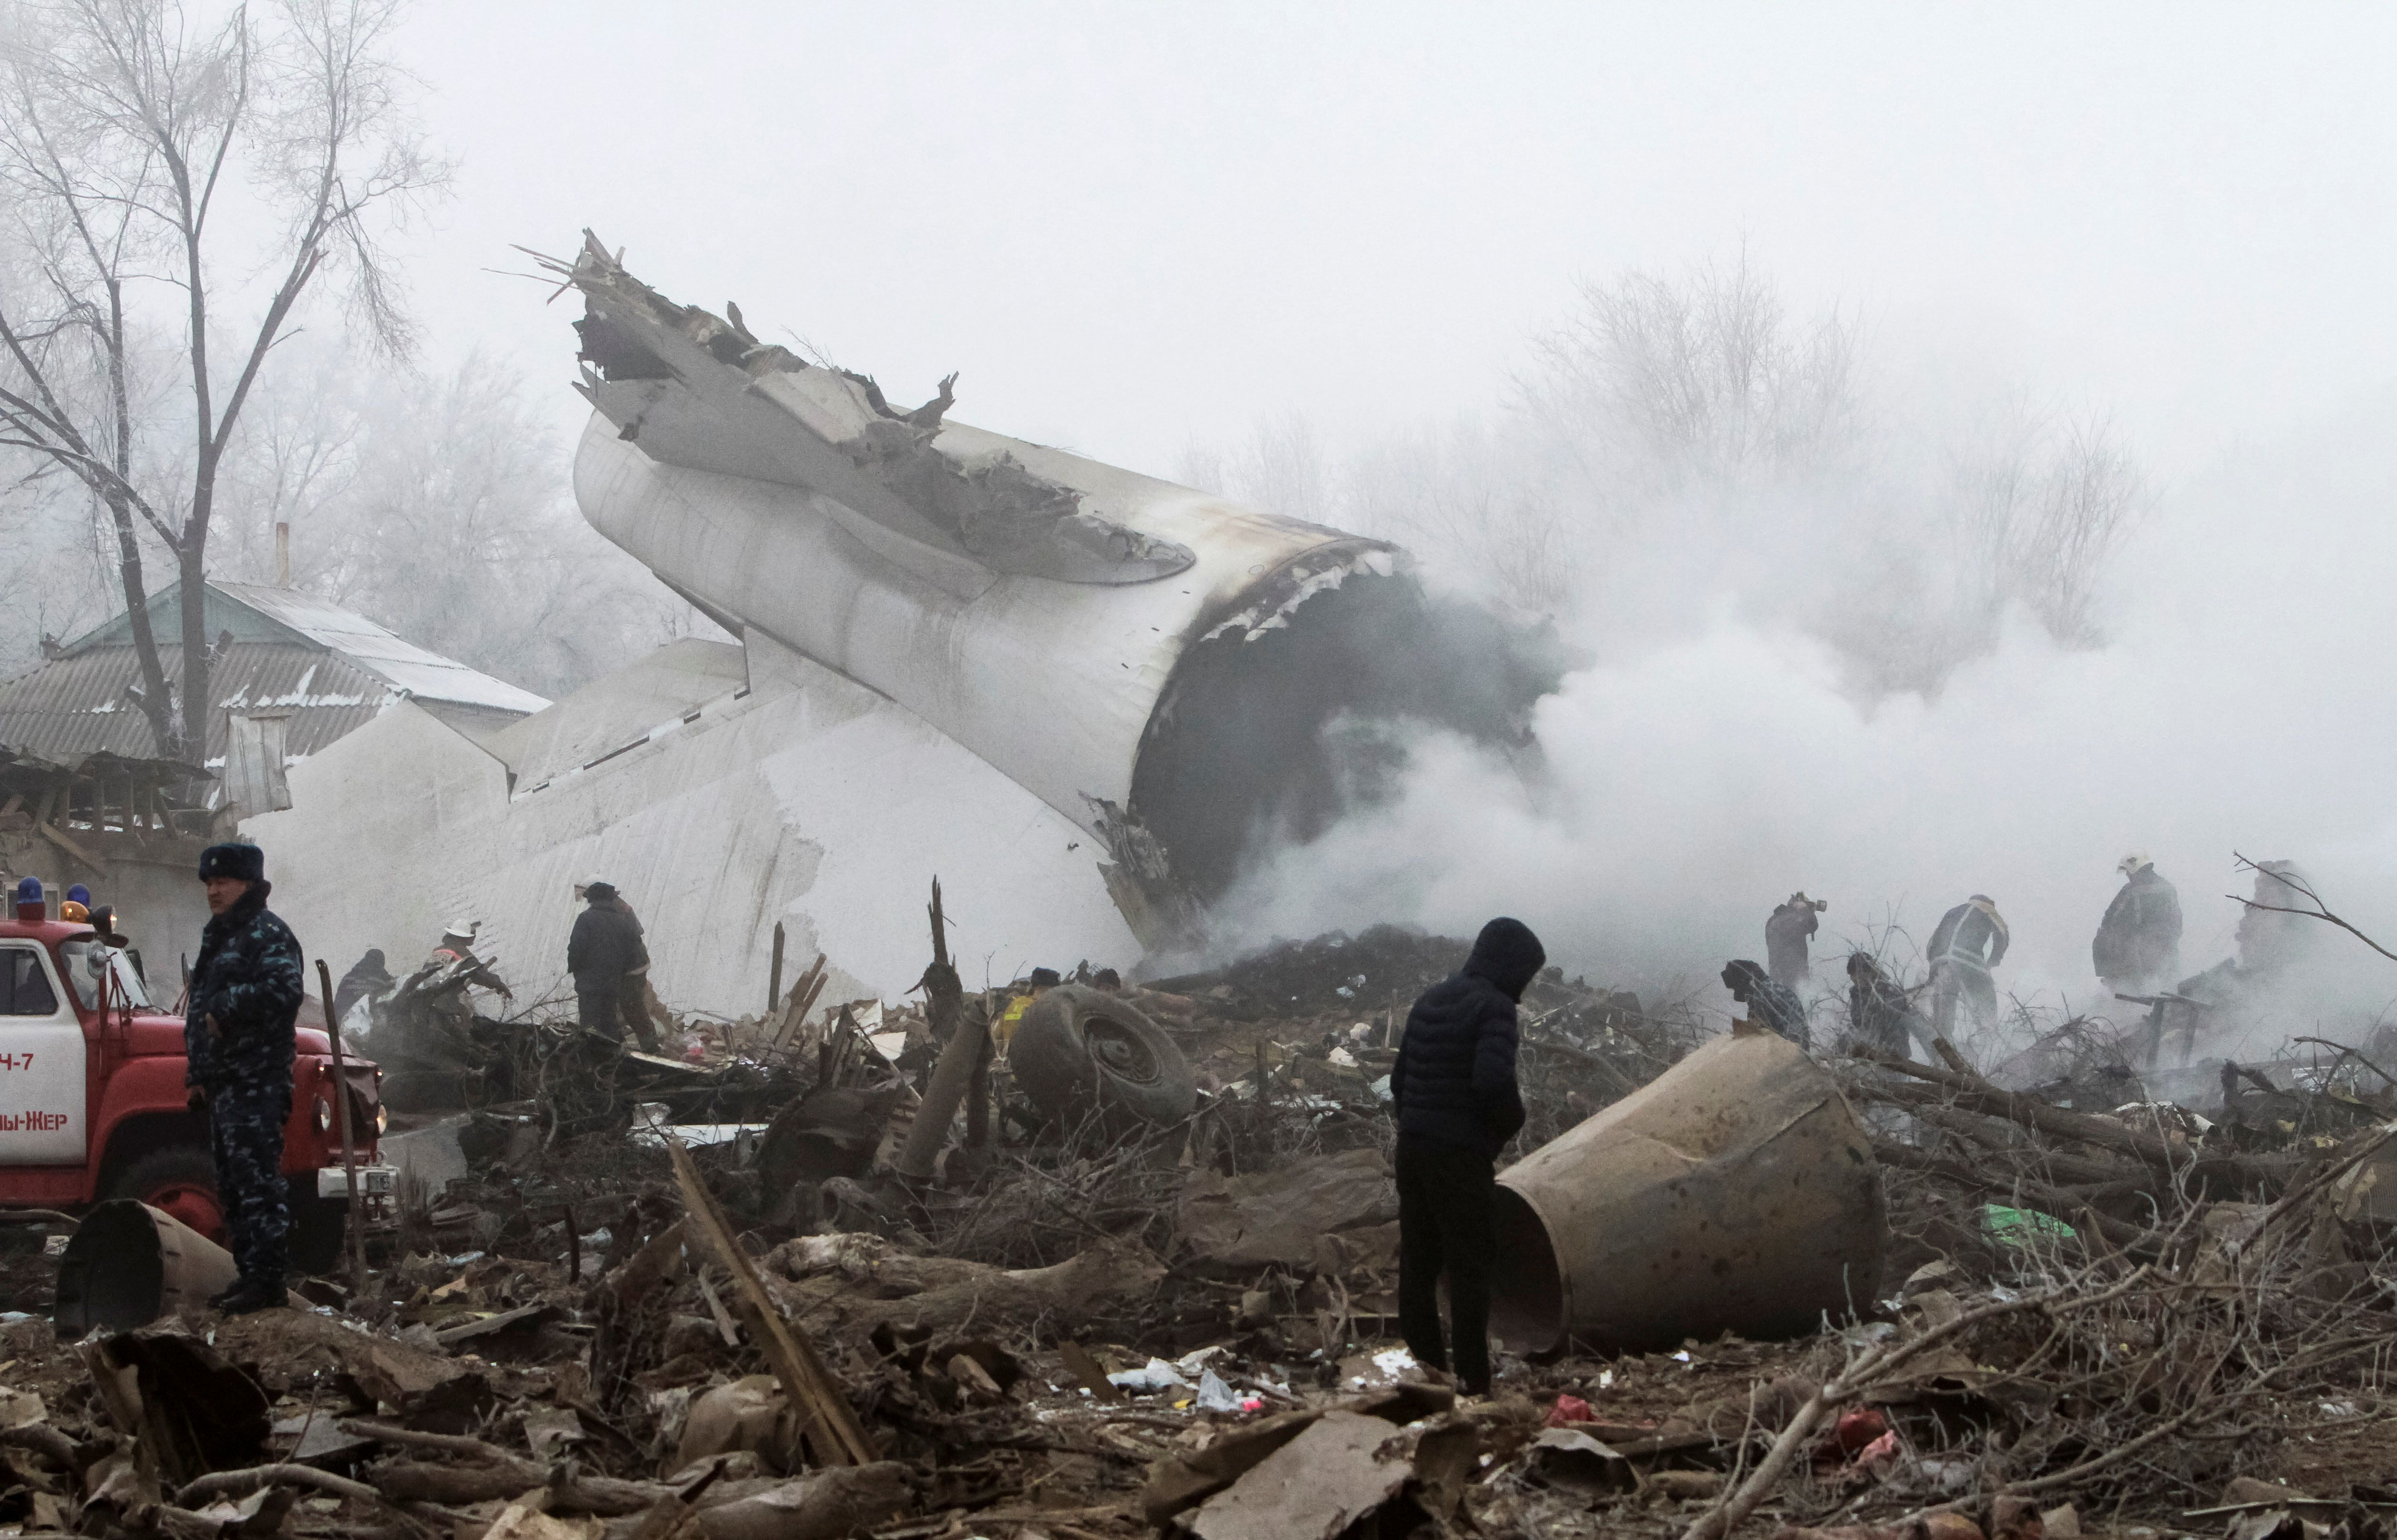 Rescue teams have reached the crash site of a Turkish cargo jet near Kyrgyzstan's Manas